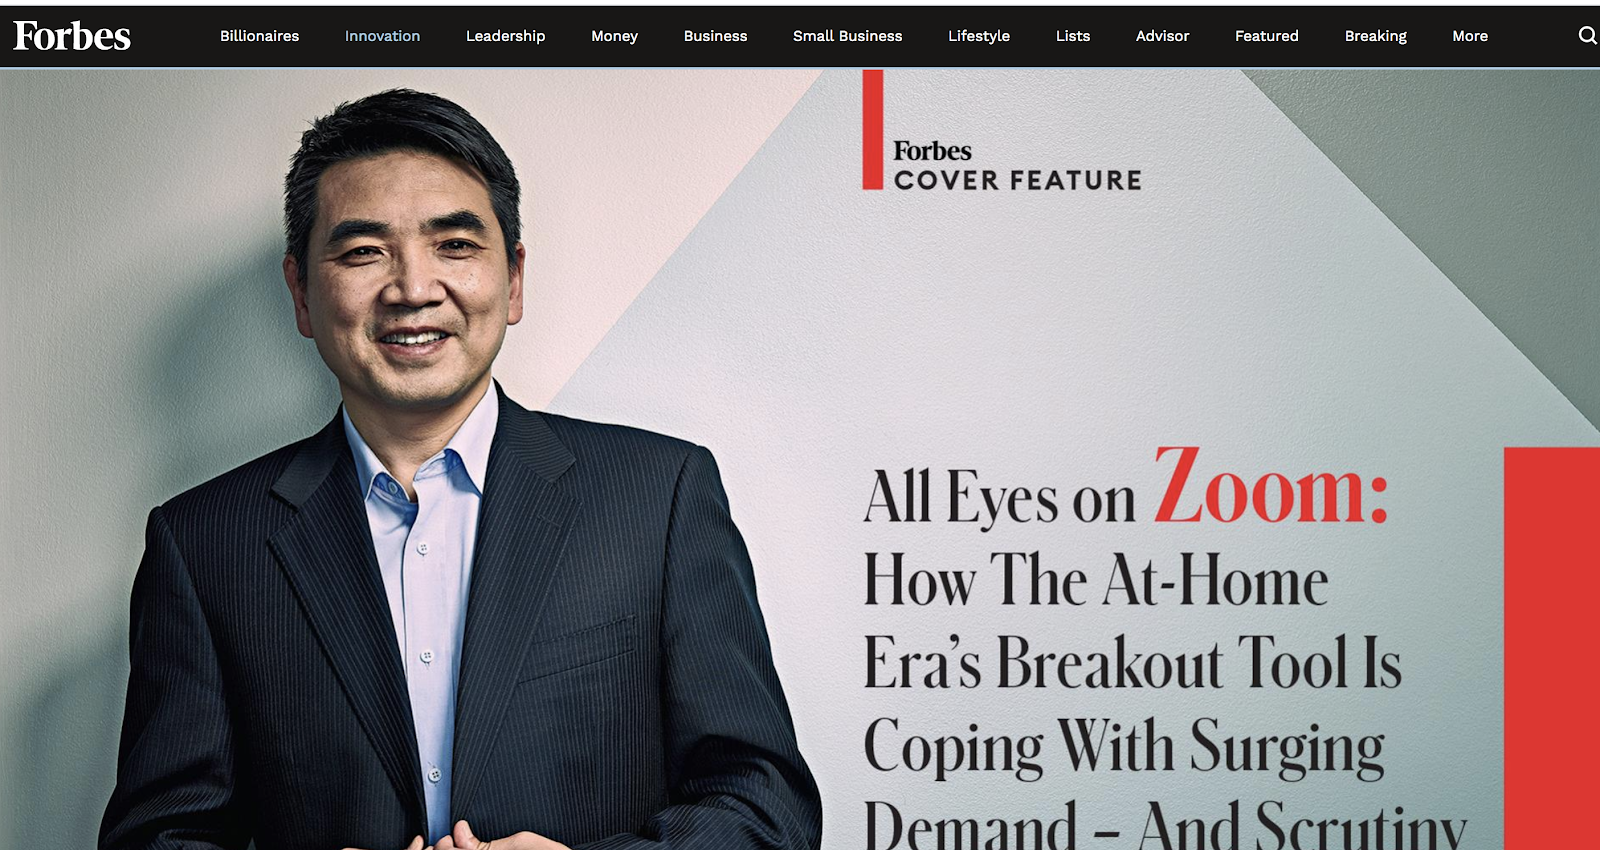 Forbes Feature Story Header Image (Screenshot) Example